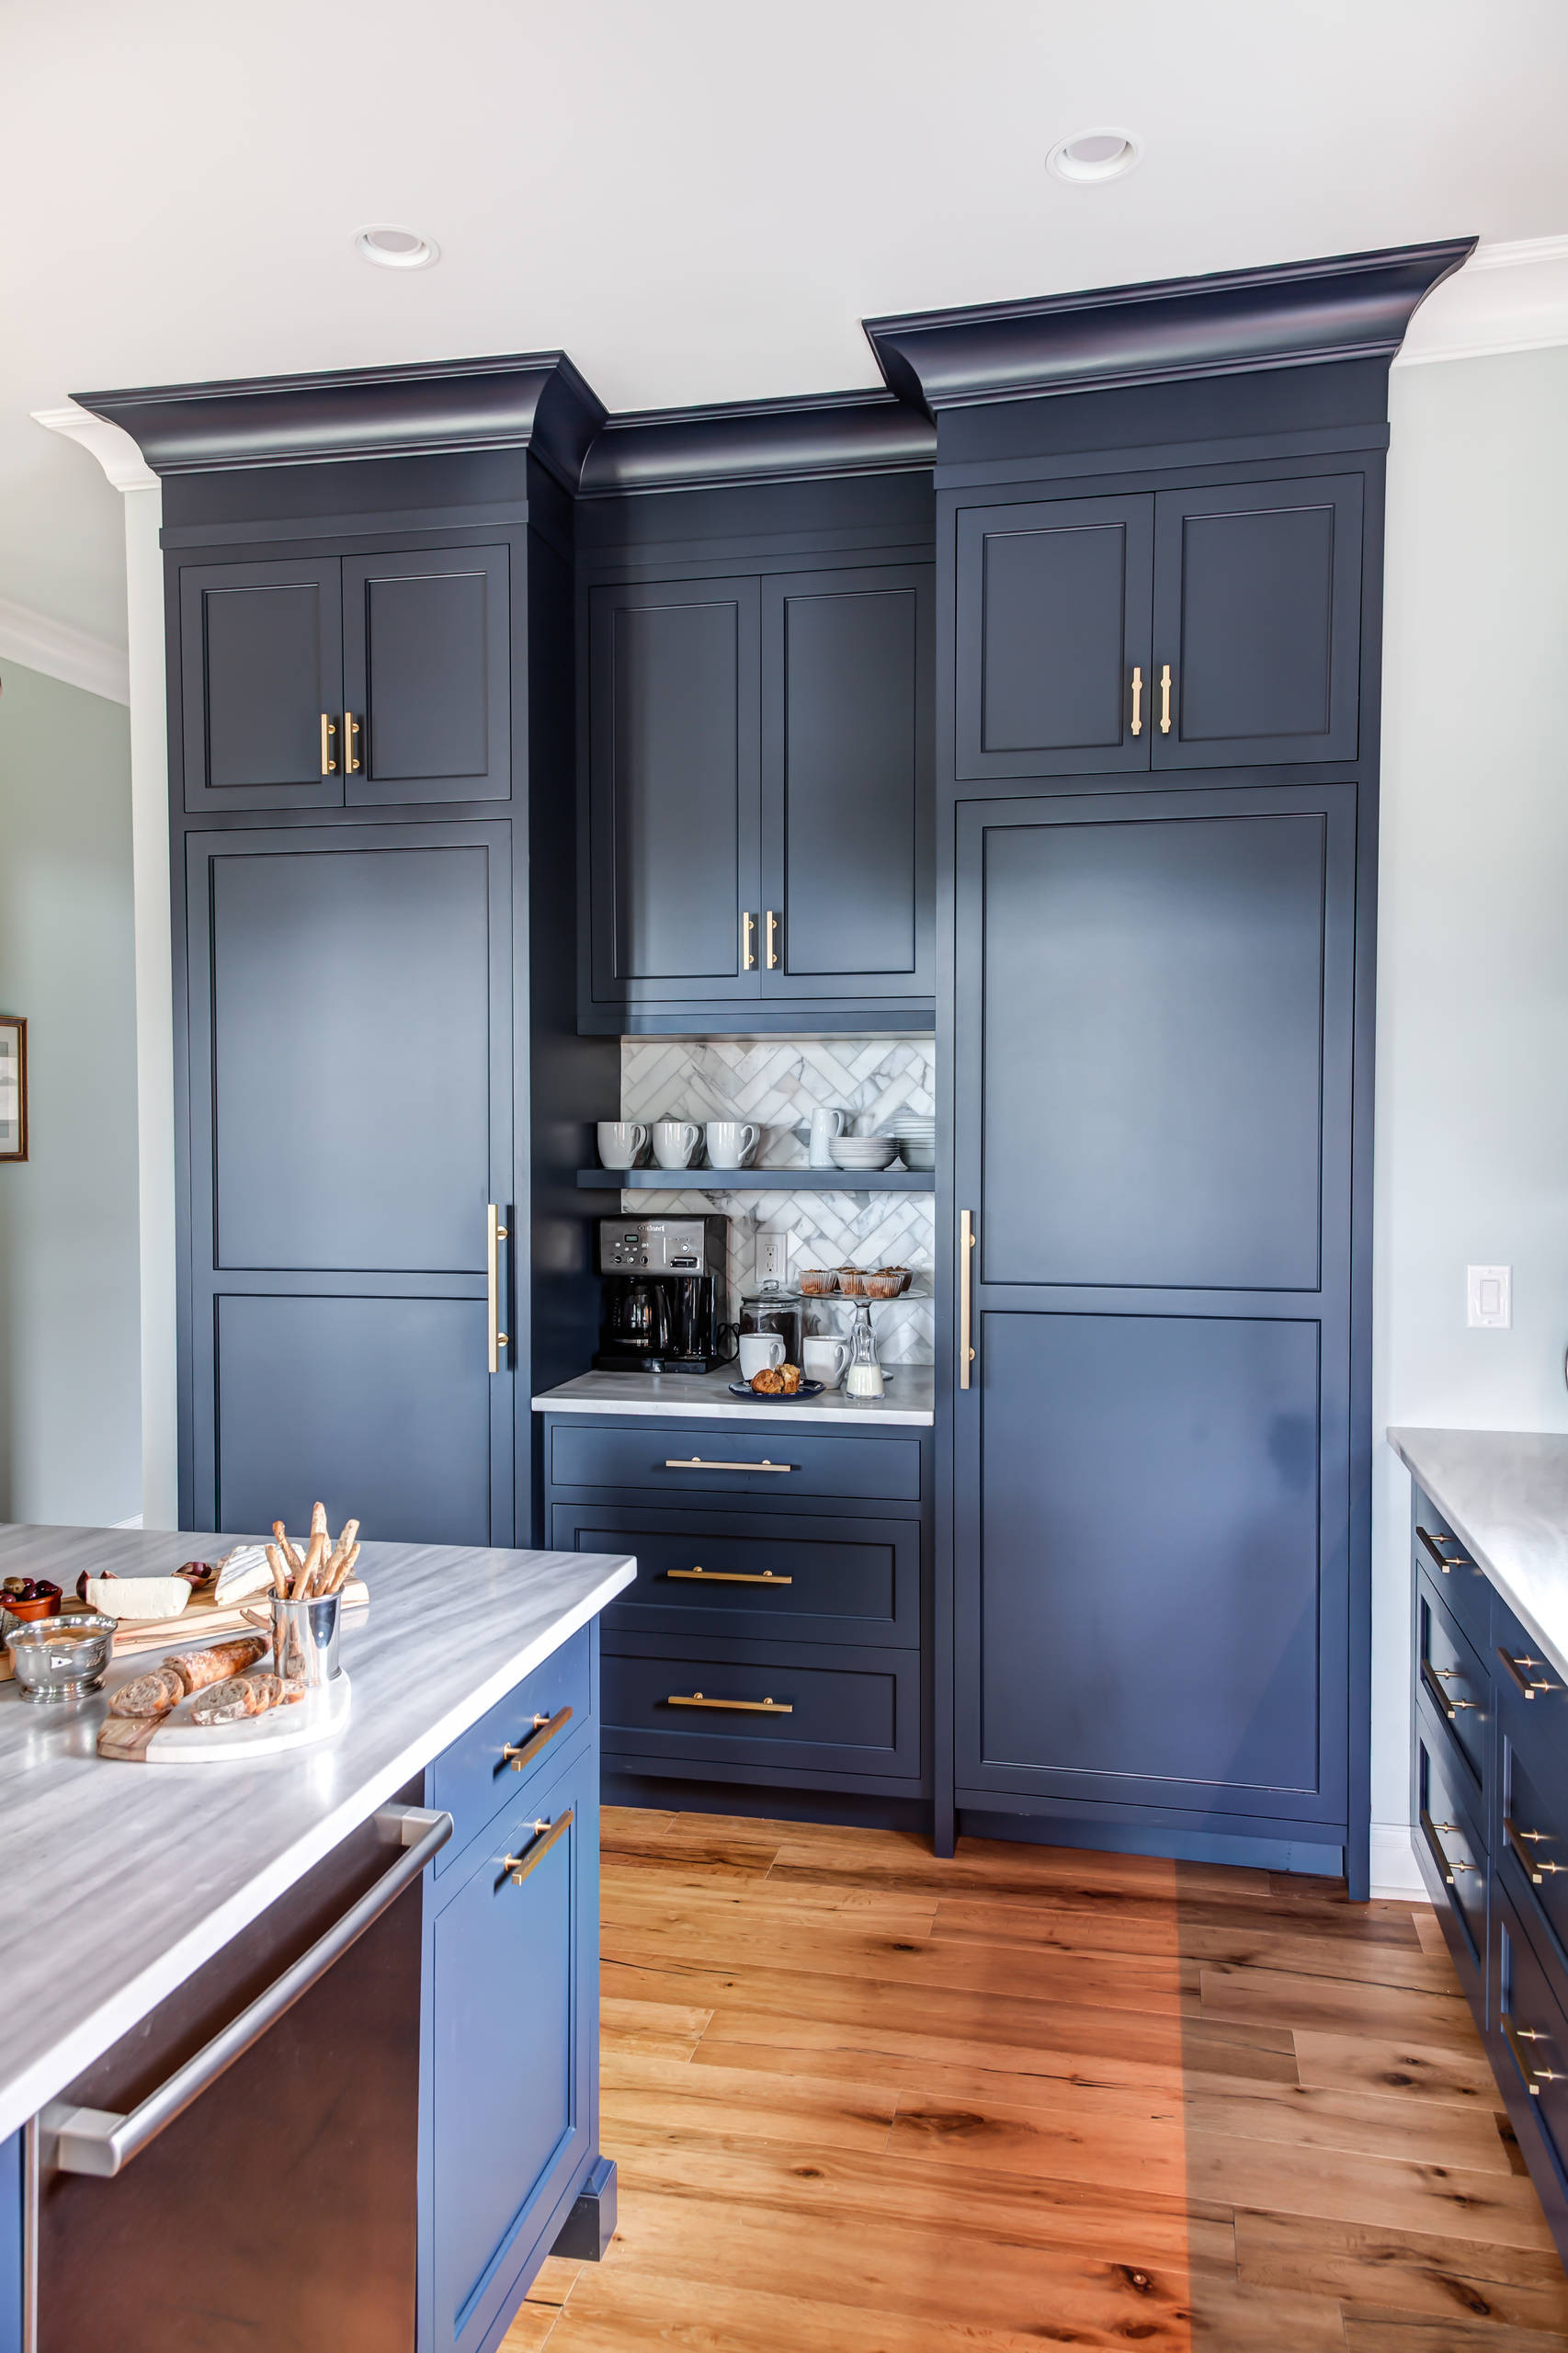 75 Beautiful Kitchen With Blue Cabinets And Granite Countertops Pictures Ideas December 2020 Houzz